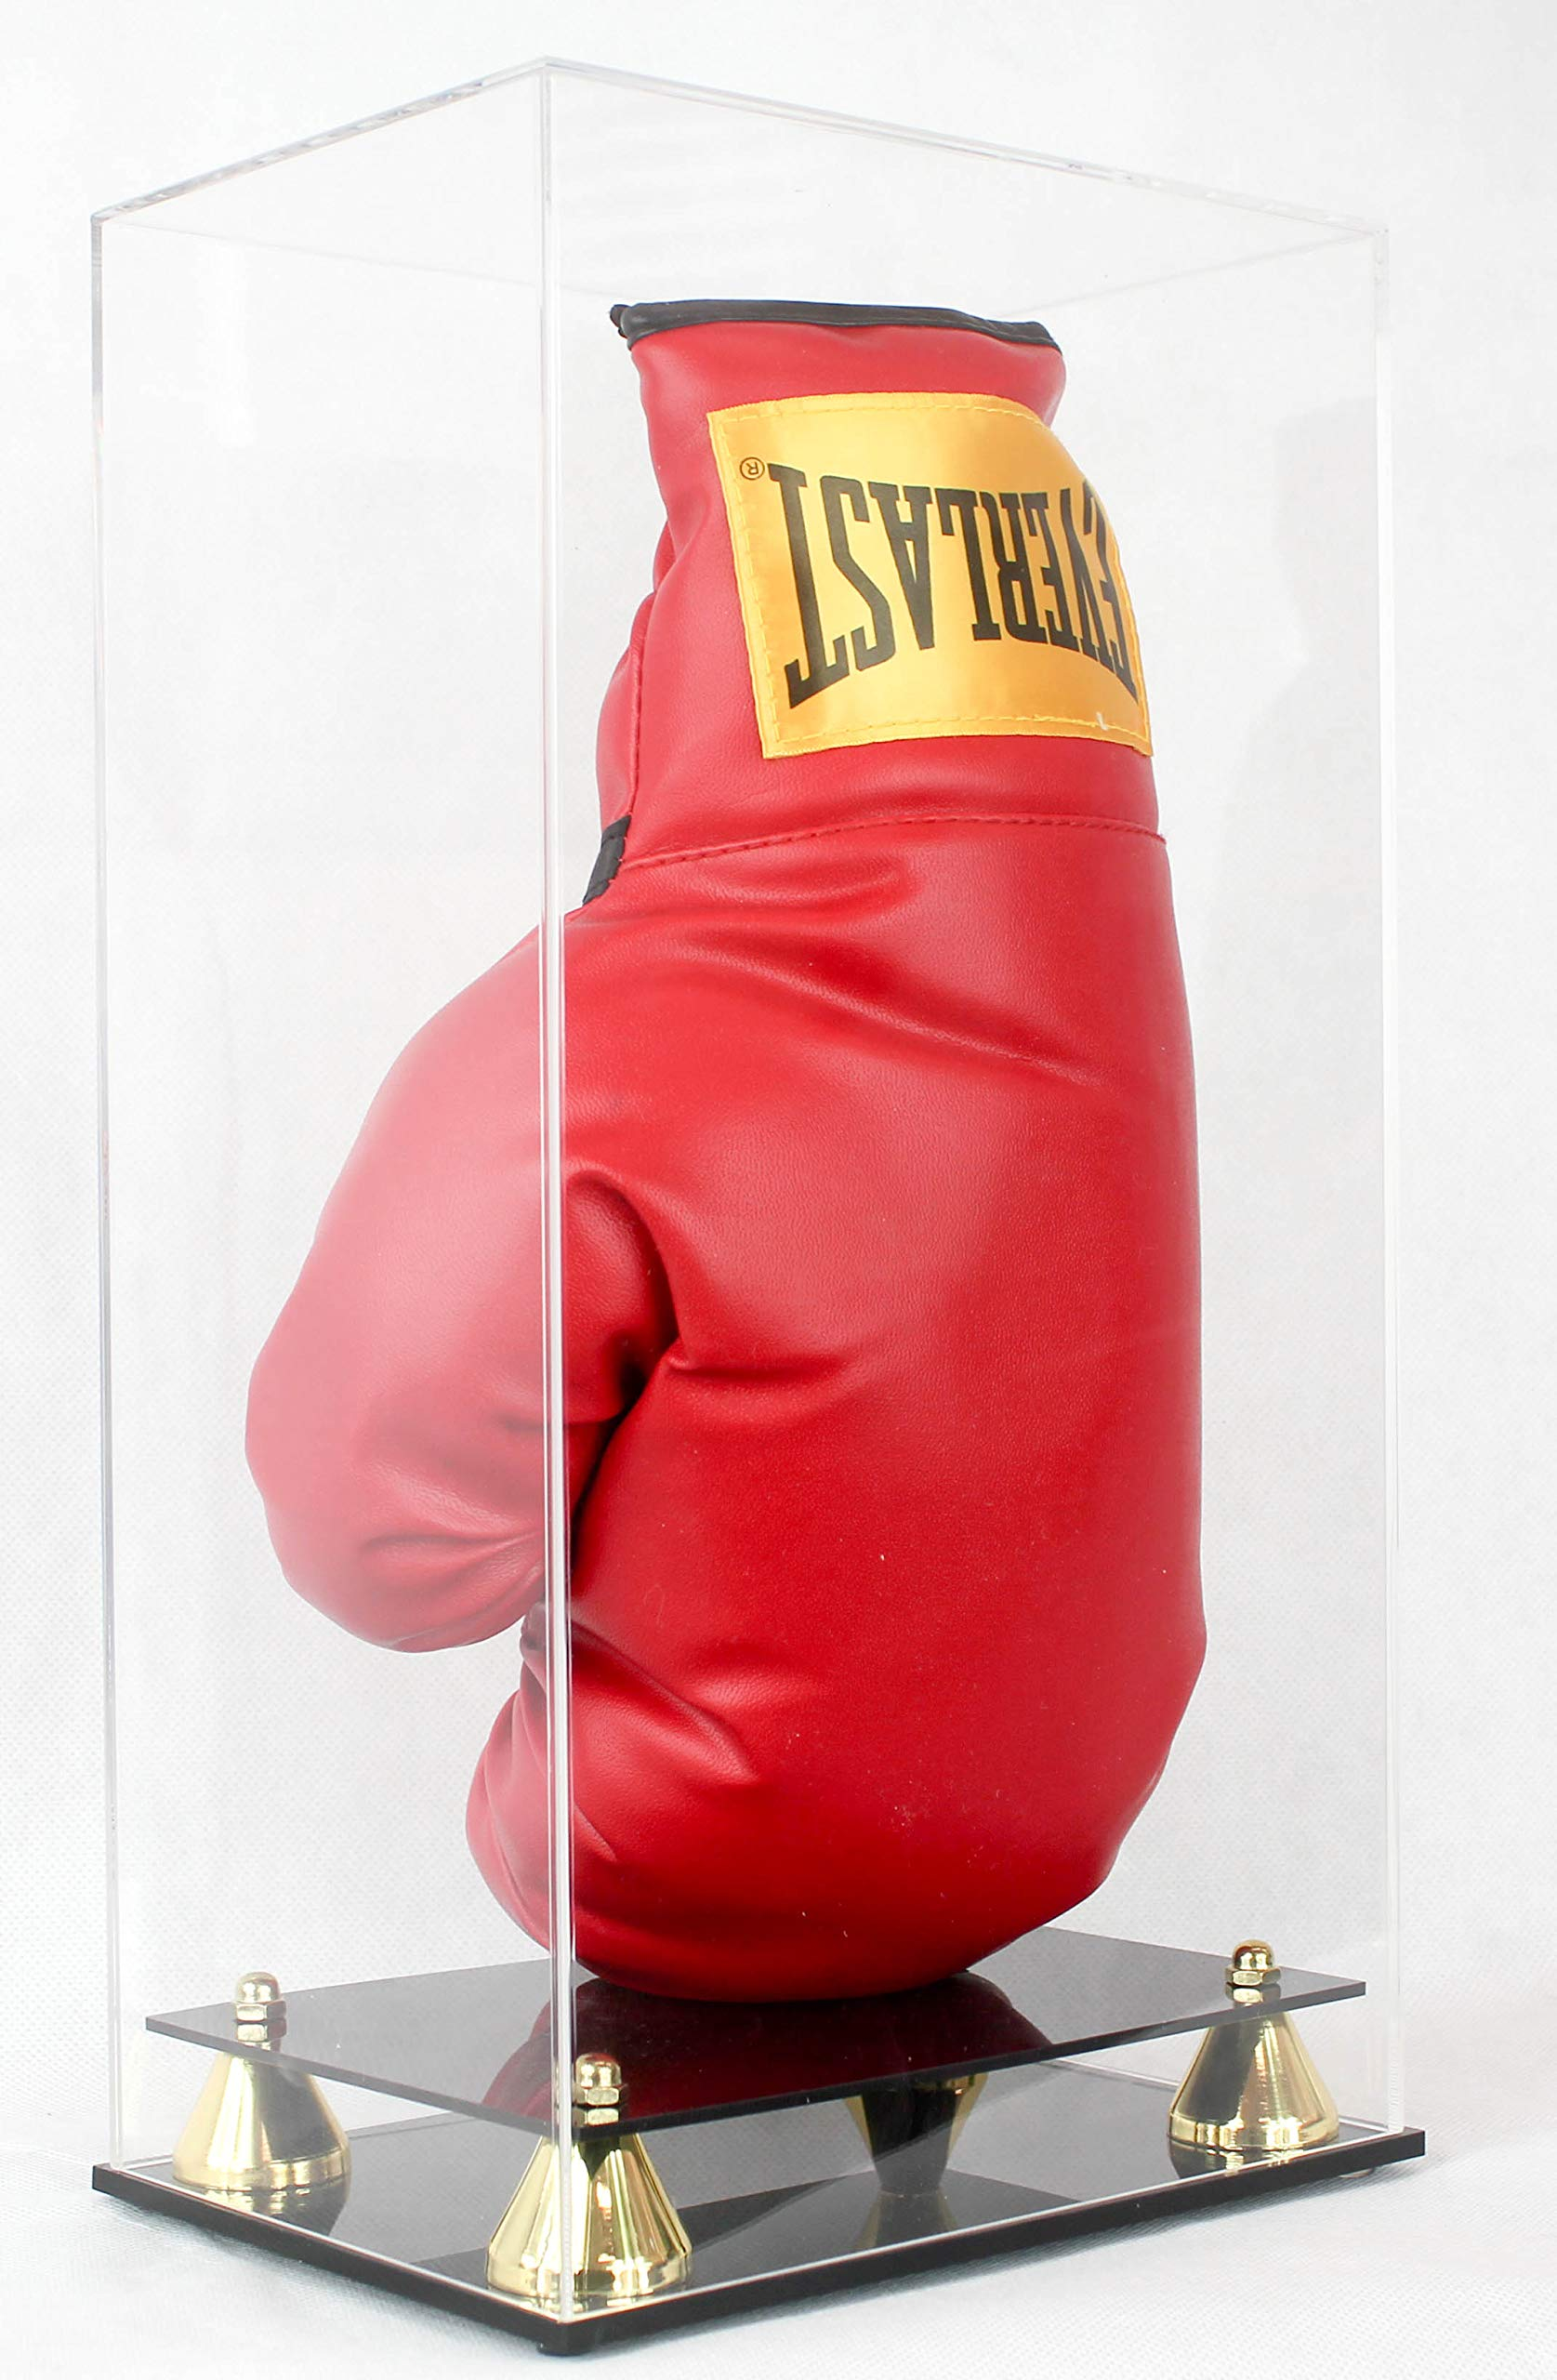 Boxing Glove Display Case Holder Showcase, with Stands for The Gloves, UV Protection, Elegant Riser Stand (One Glove)